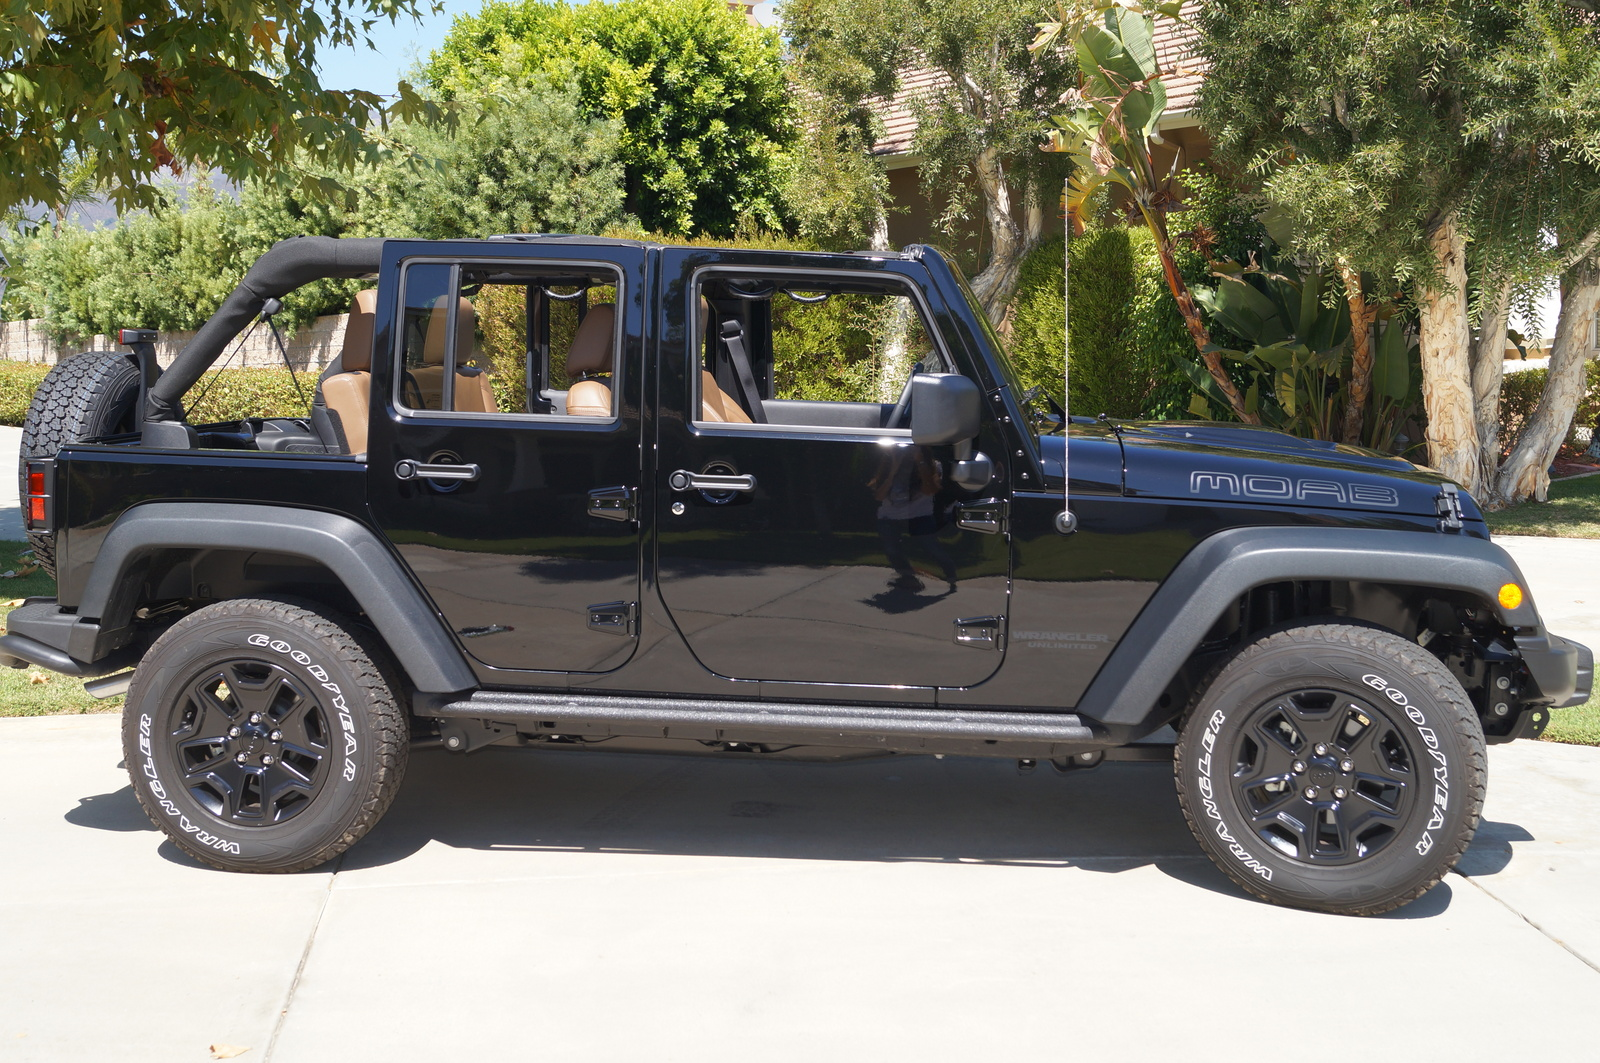 new 2013 jeep wrangler unlimited exterior specs 2013 html autos weblog. Black Bedroom Furniture Sets. Home Design Ideas